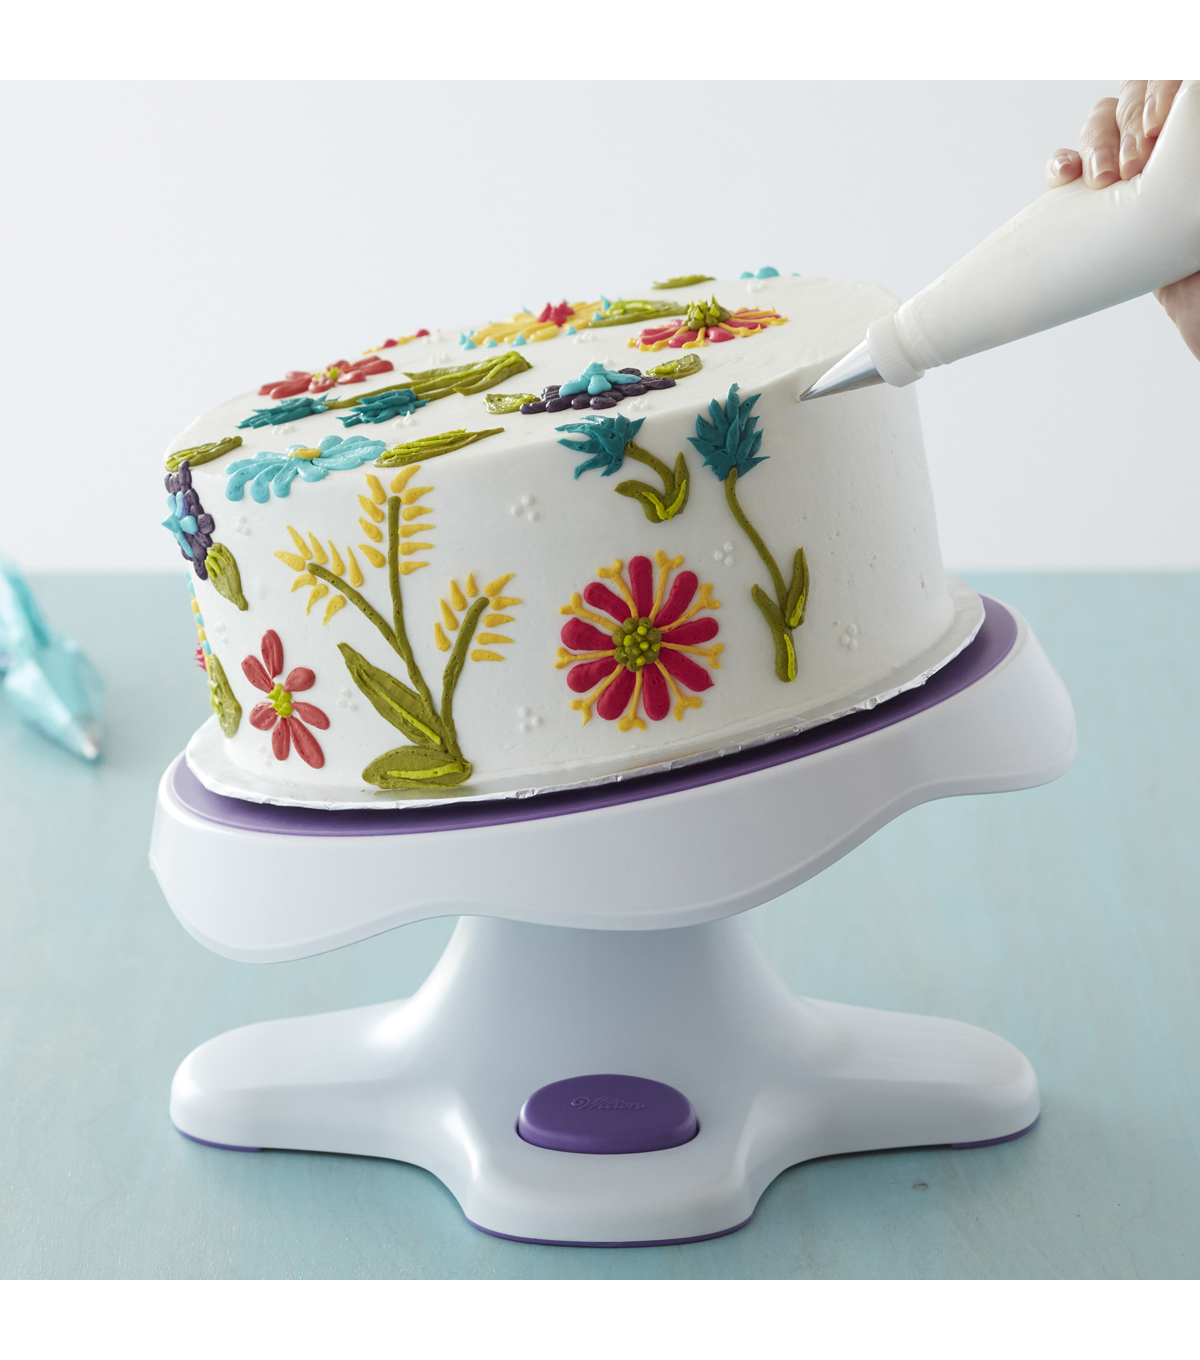 Wilton Tilt-N-Turn Ultra Cake Turntable - Cake Decorating Stand